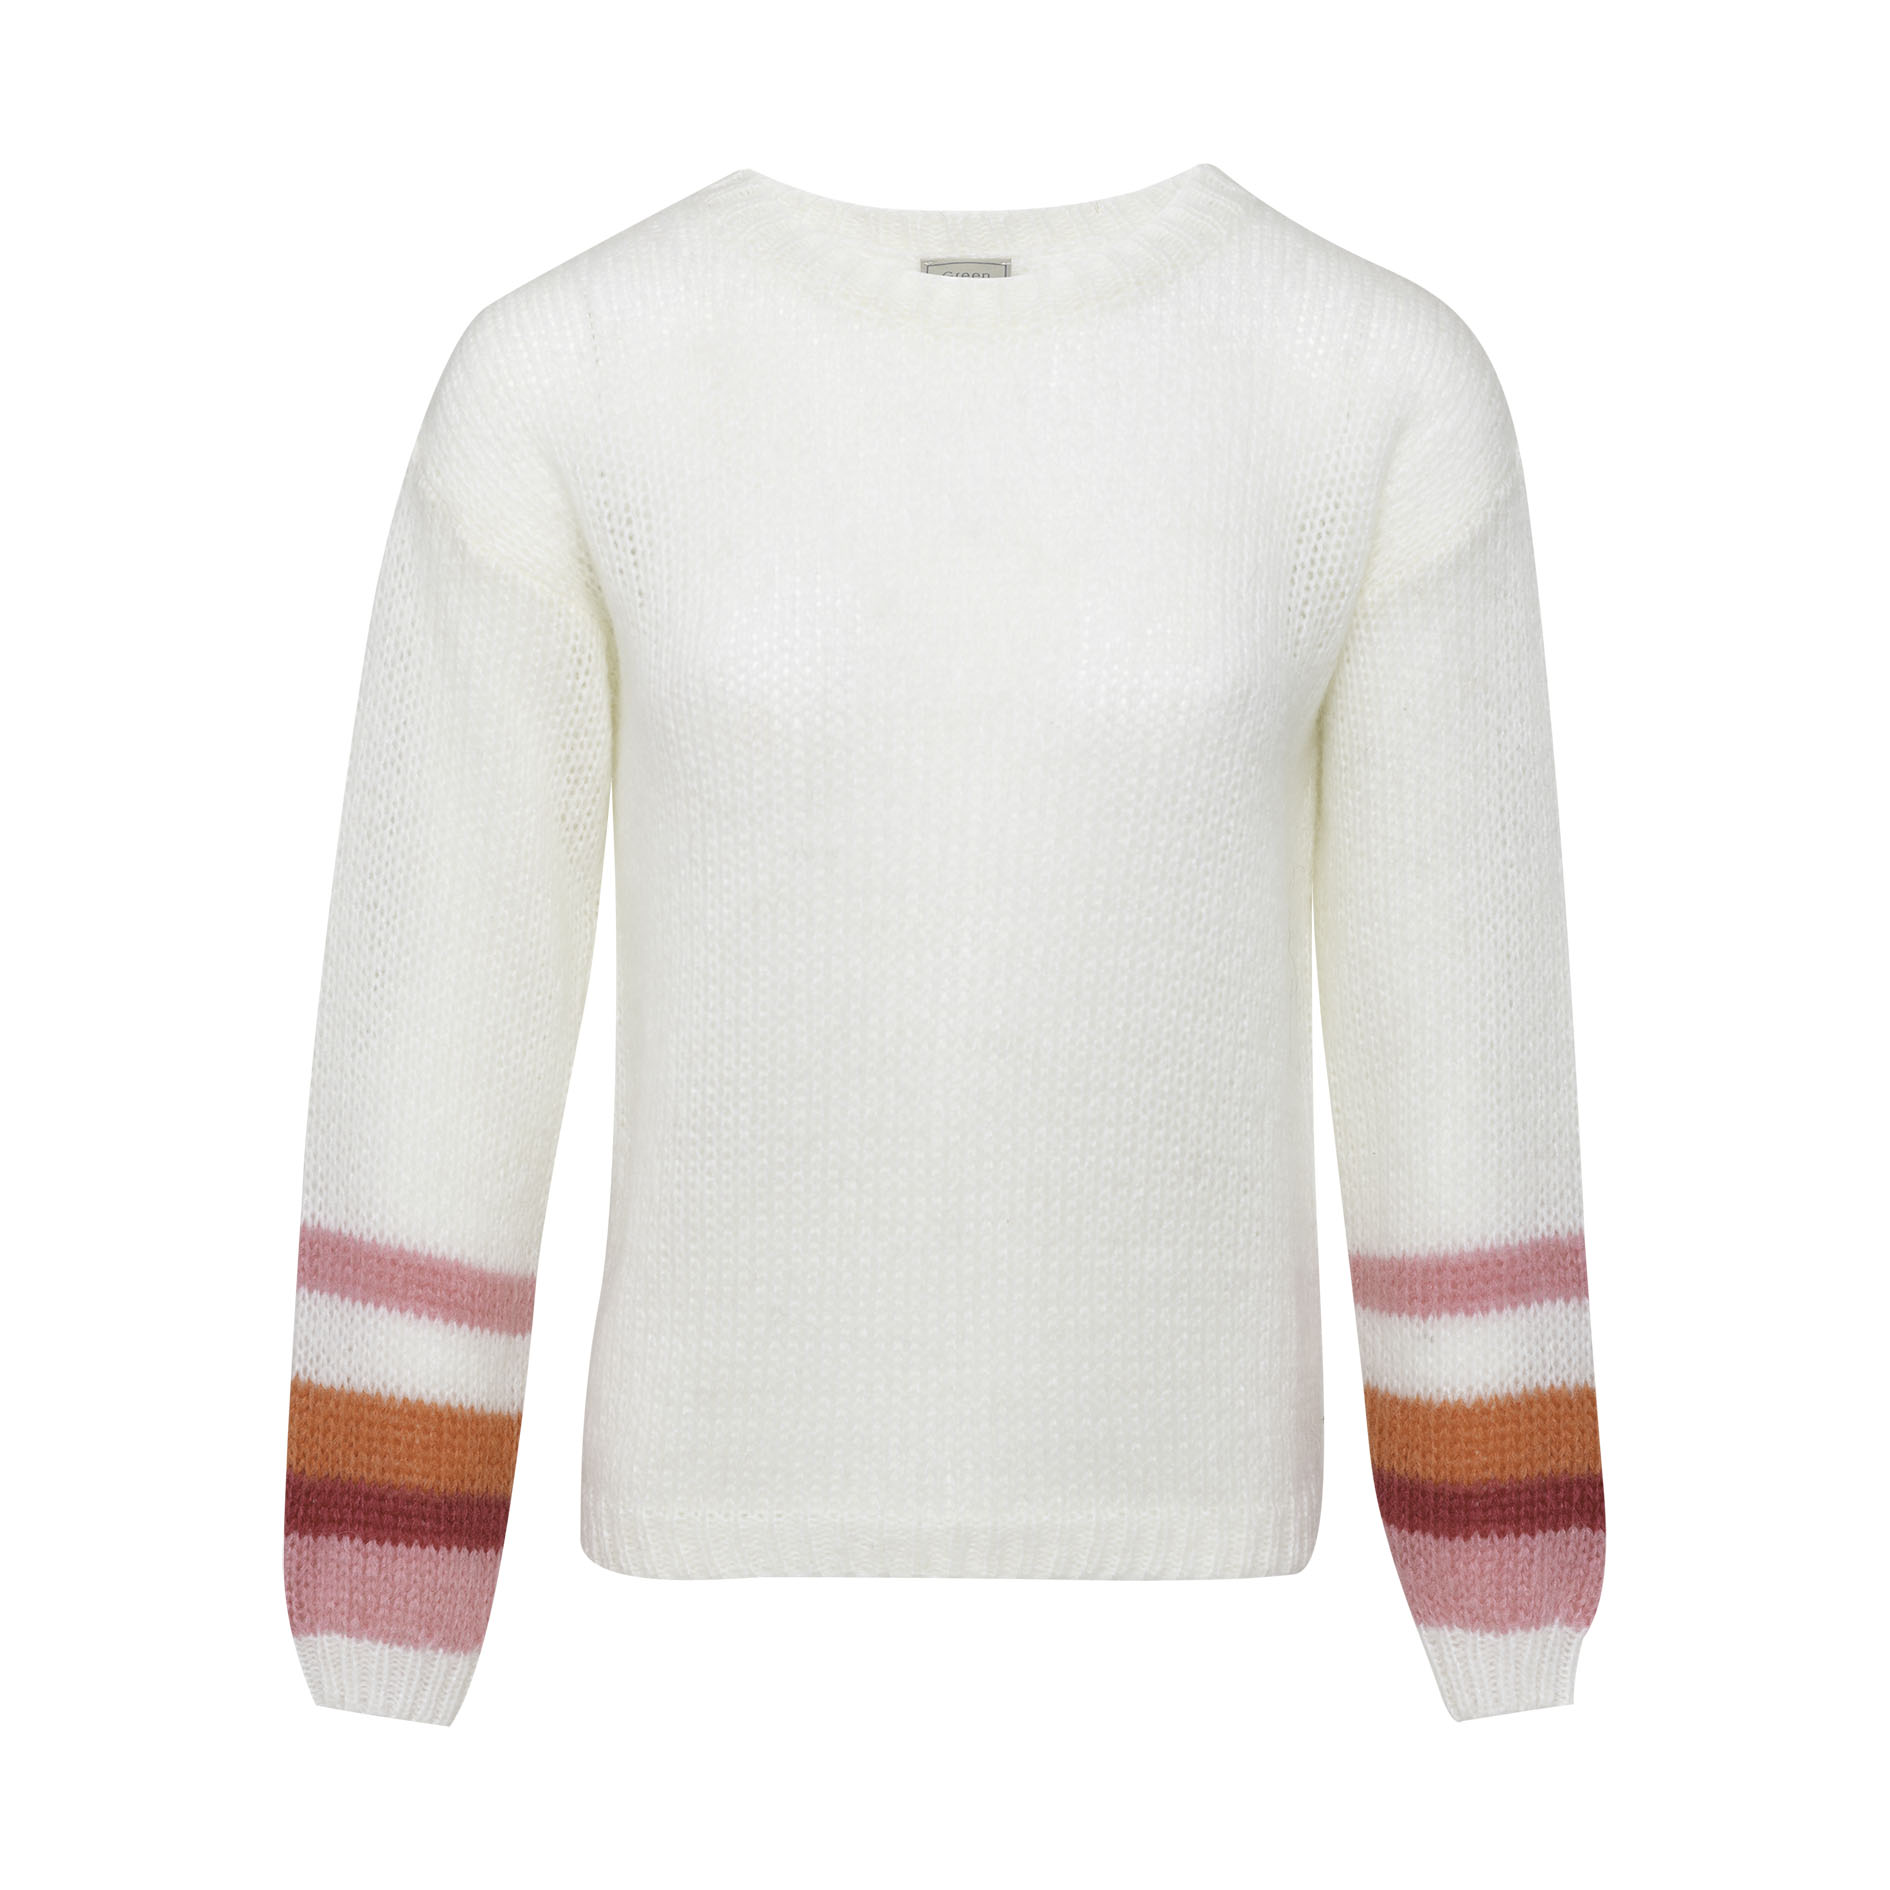 Pull 'Puurs' White